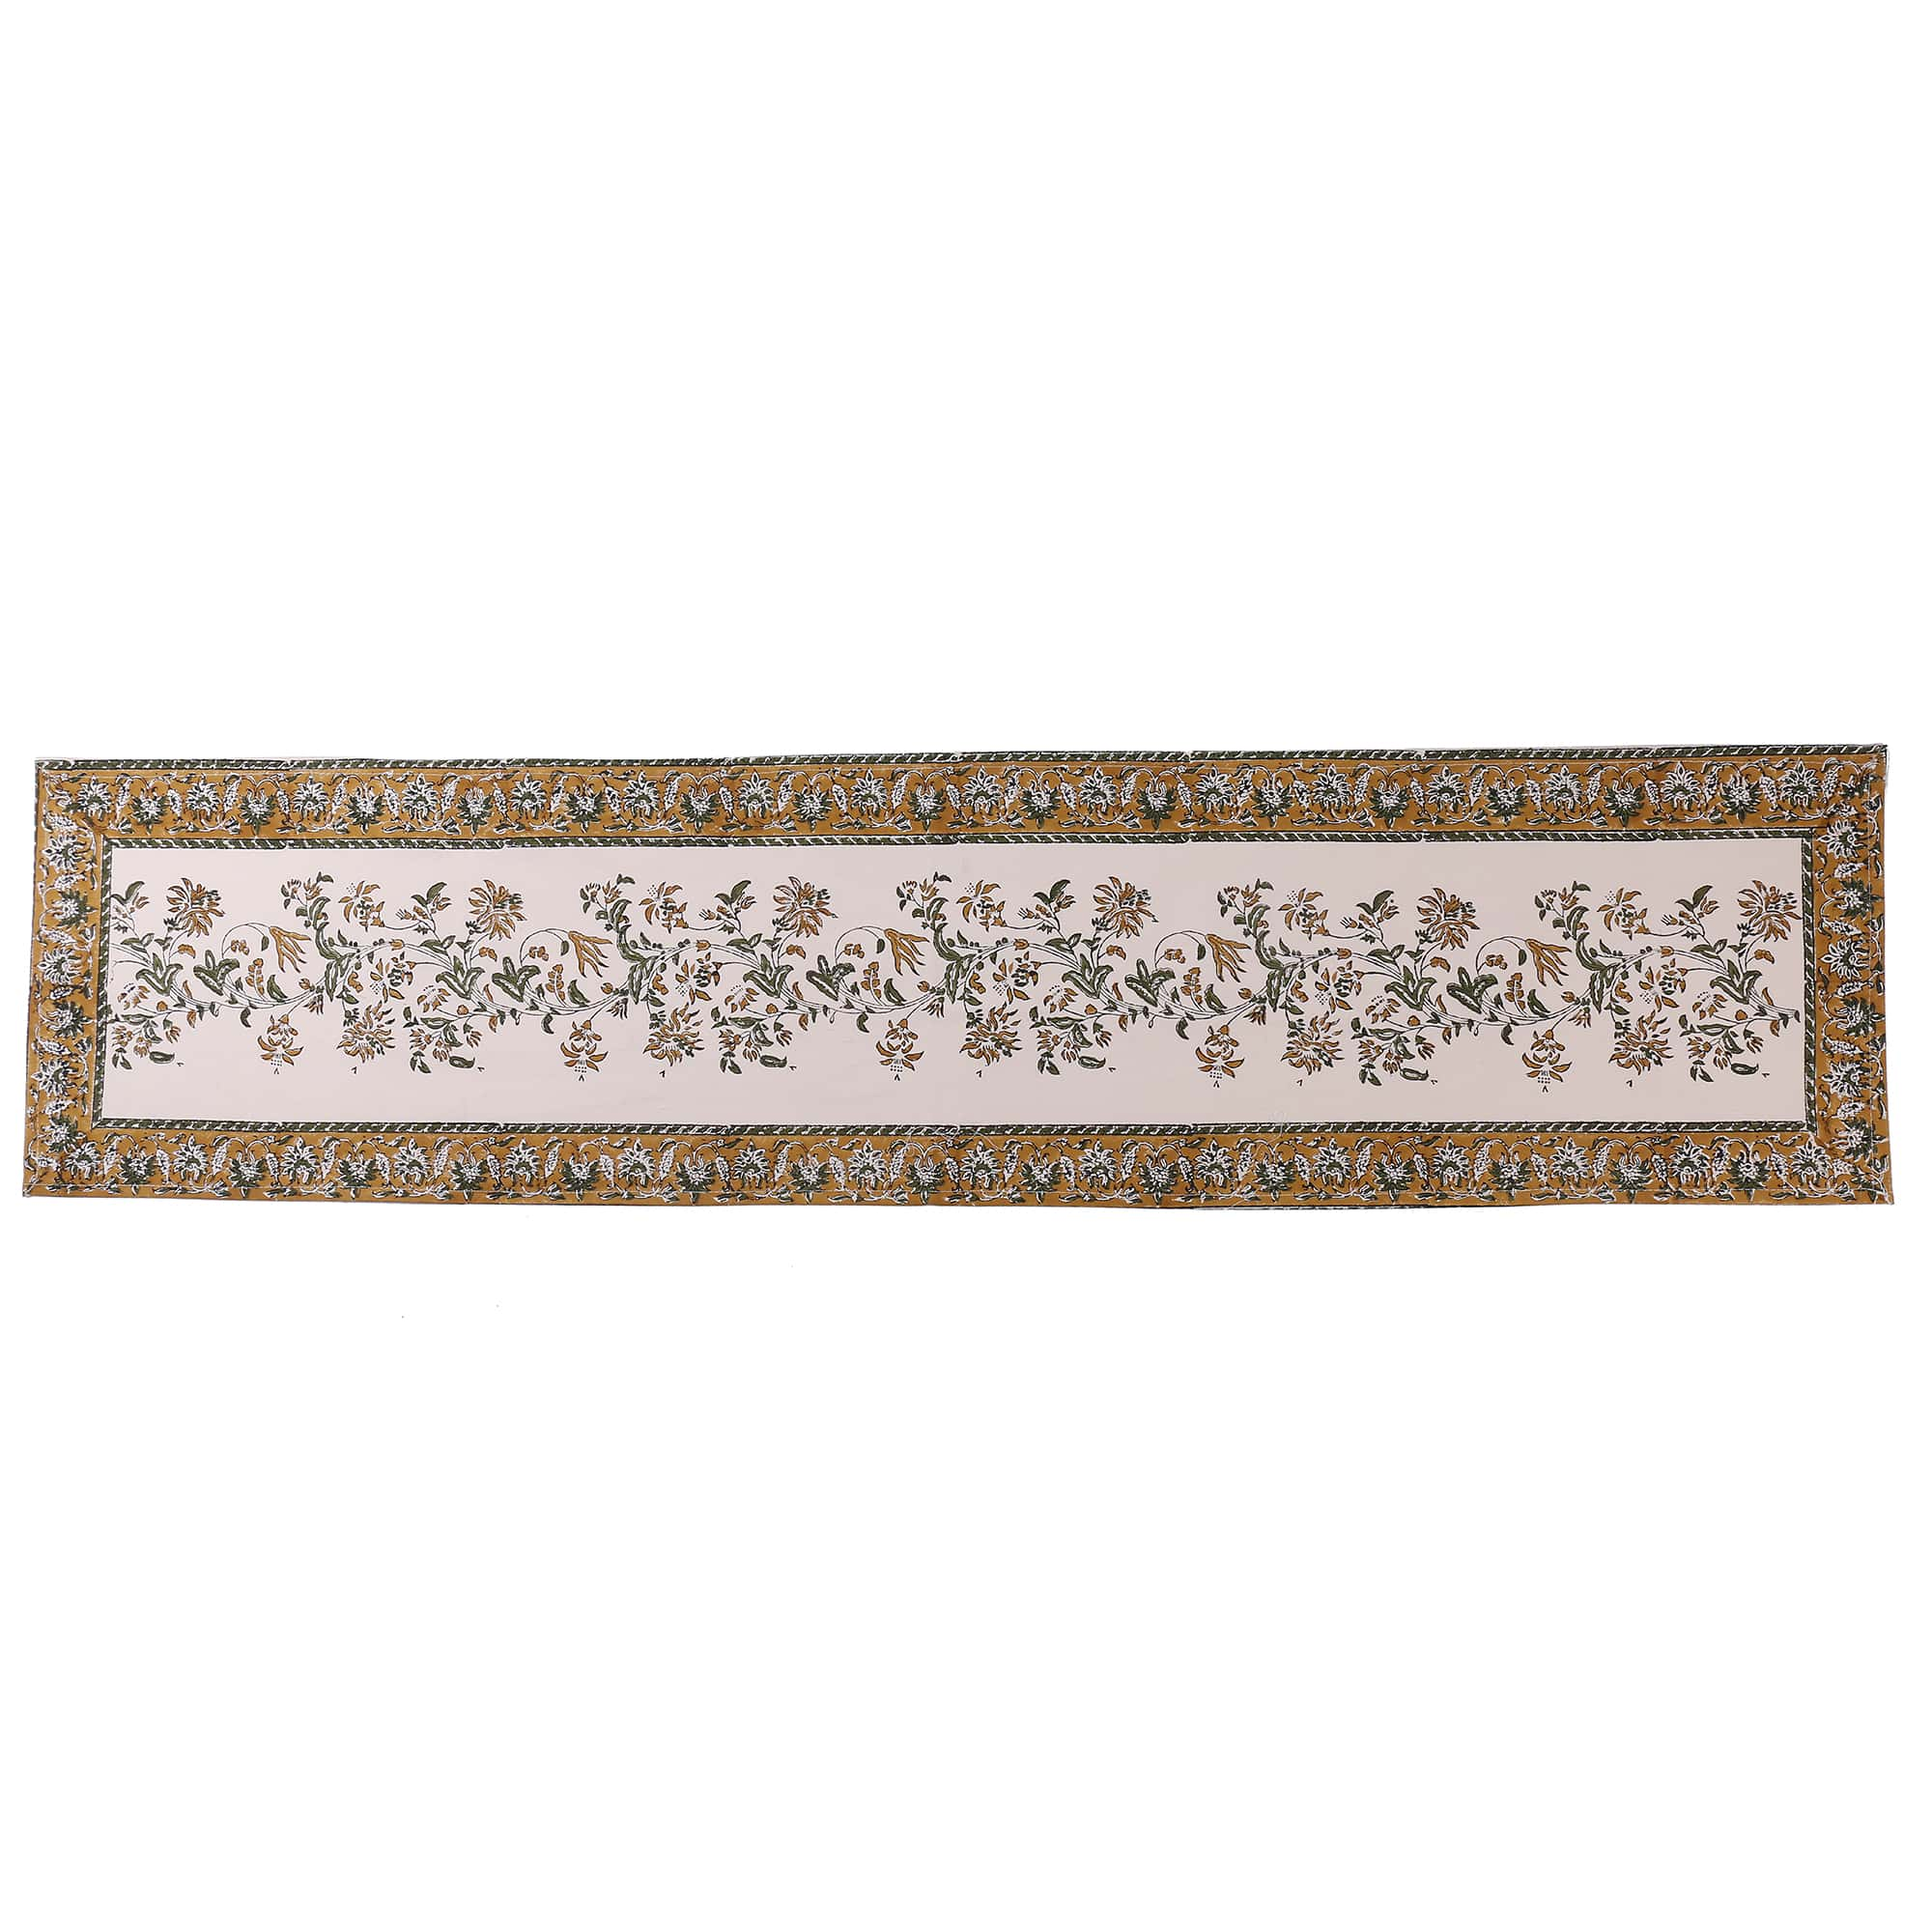 Jaipuri Cotton Table Runner - 6